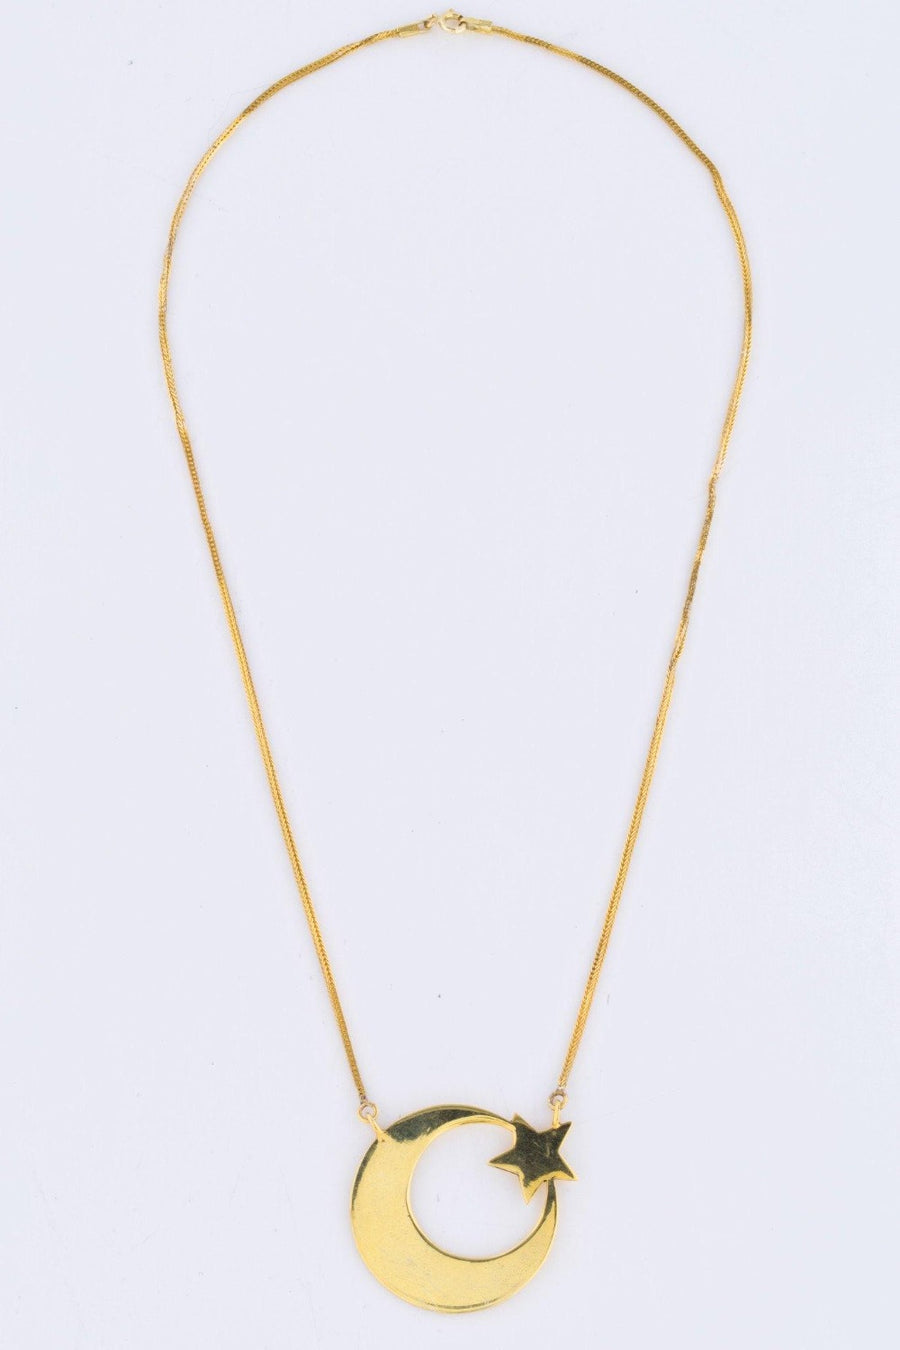 The Always and Forever Necklace - Blingistan, gold plated necklace, made with Afghanistan in mind.